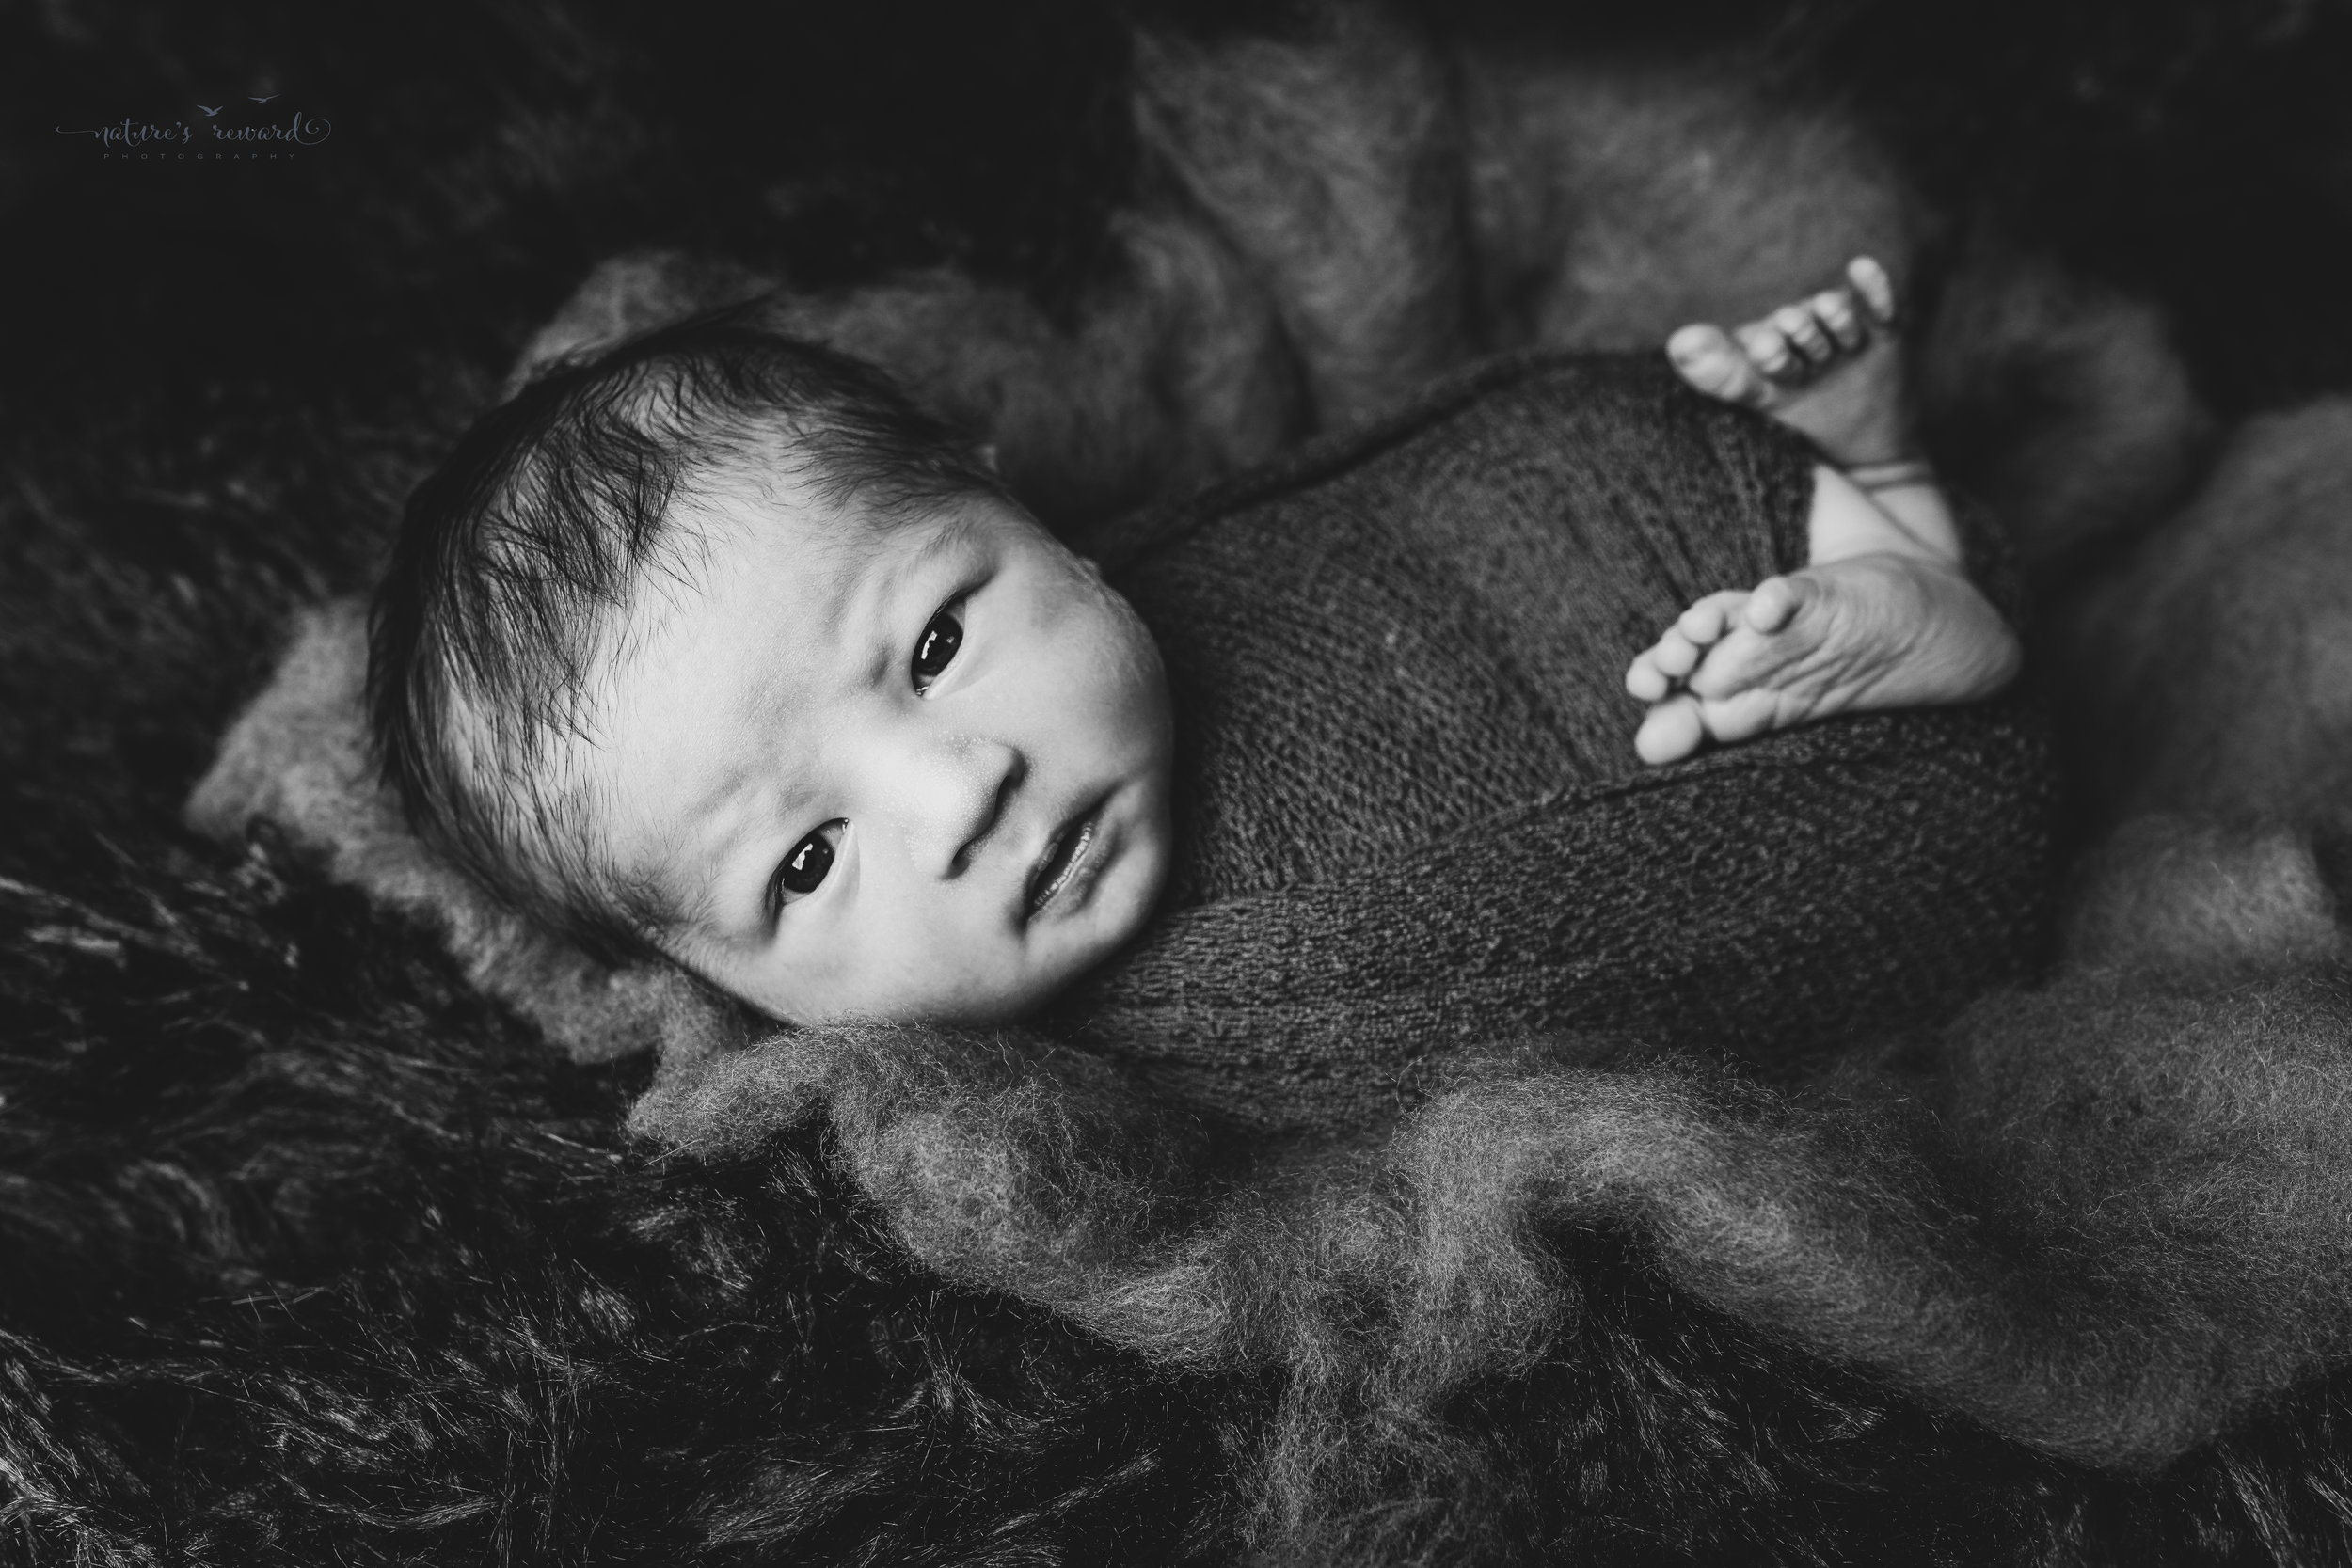 Captivating black and white portrait of a swaddled newborn baby boy by Nature's Reward Photography